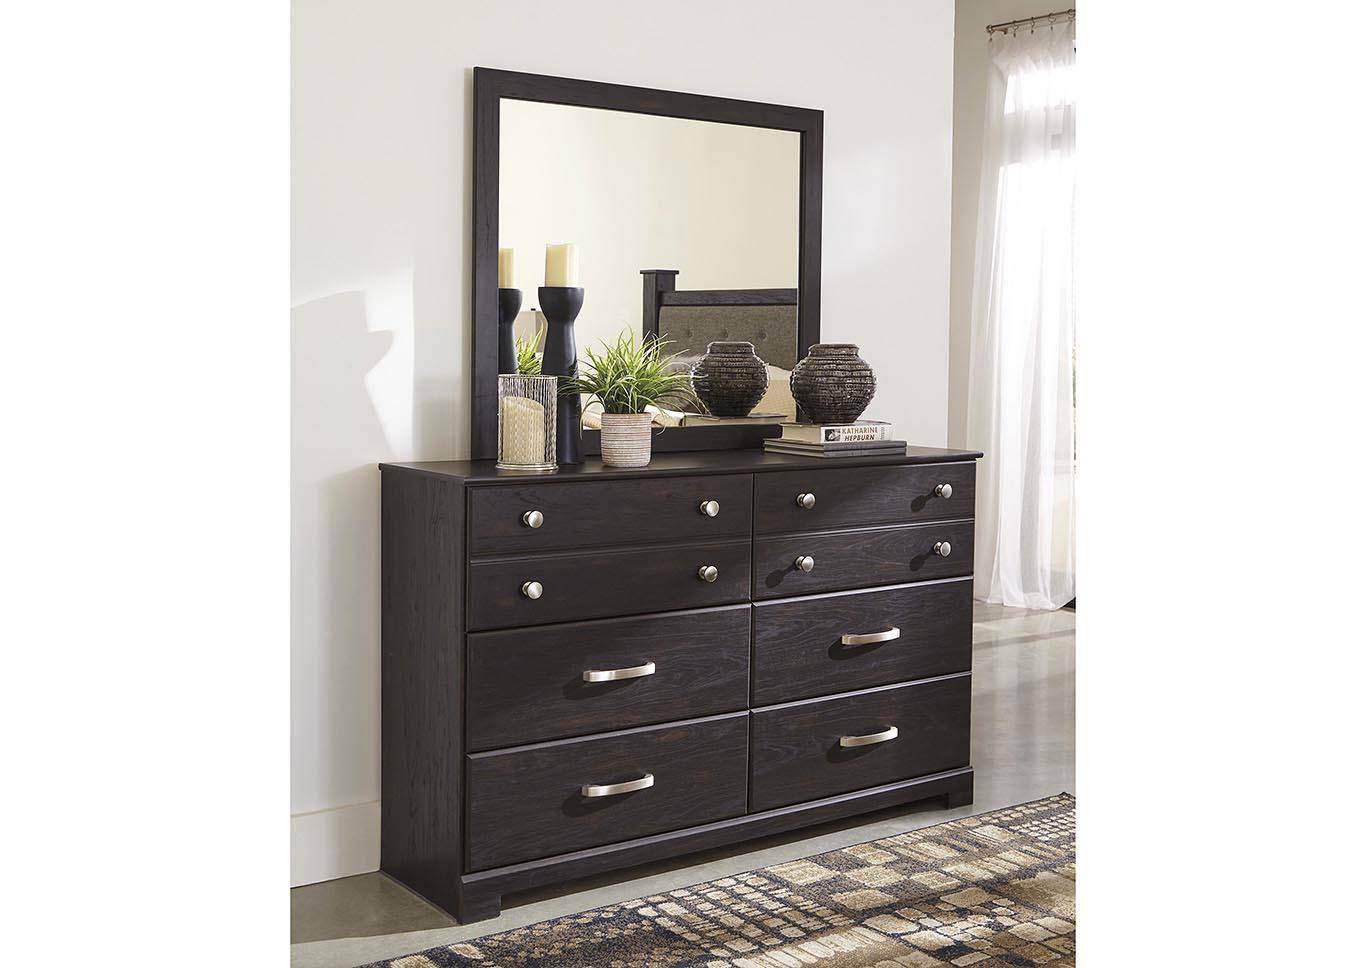 Reylow 6 Drawer Dresser and Mirror,Signature Design By Ashley